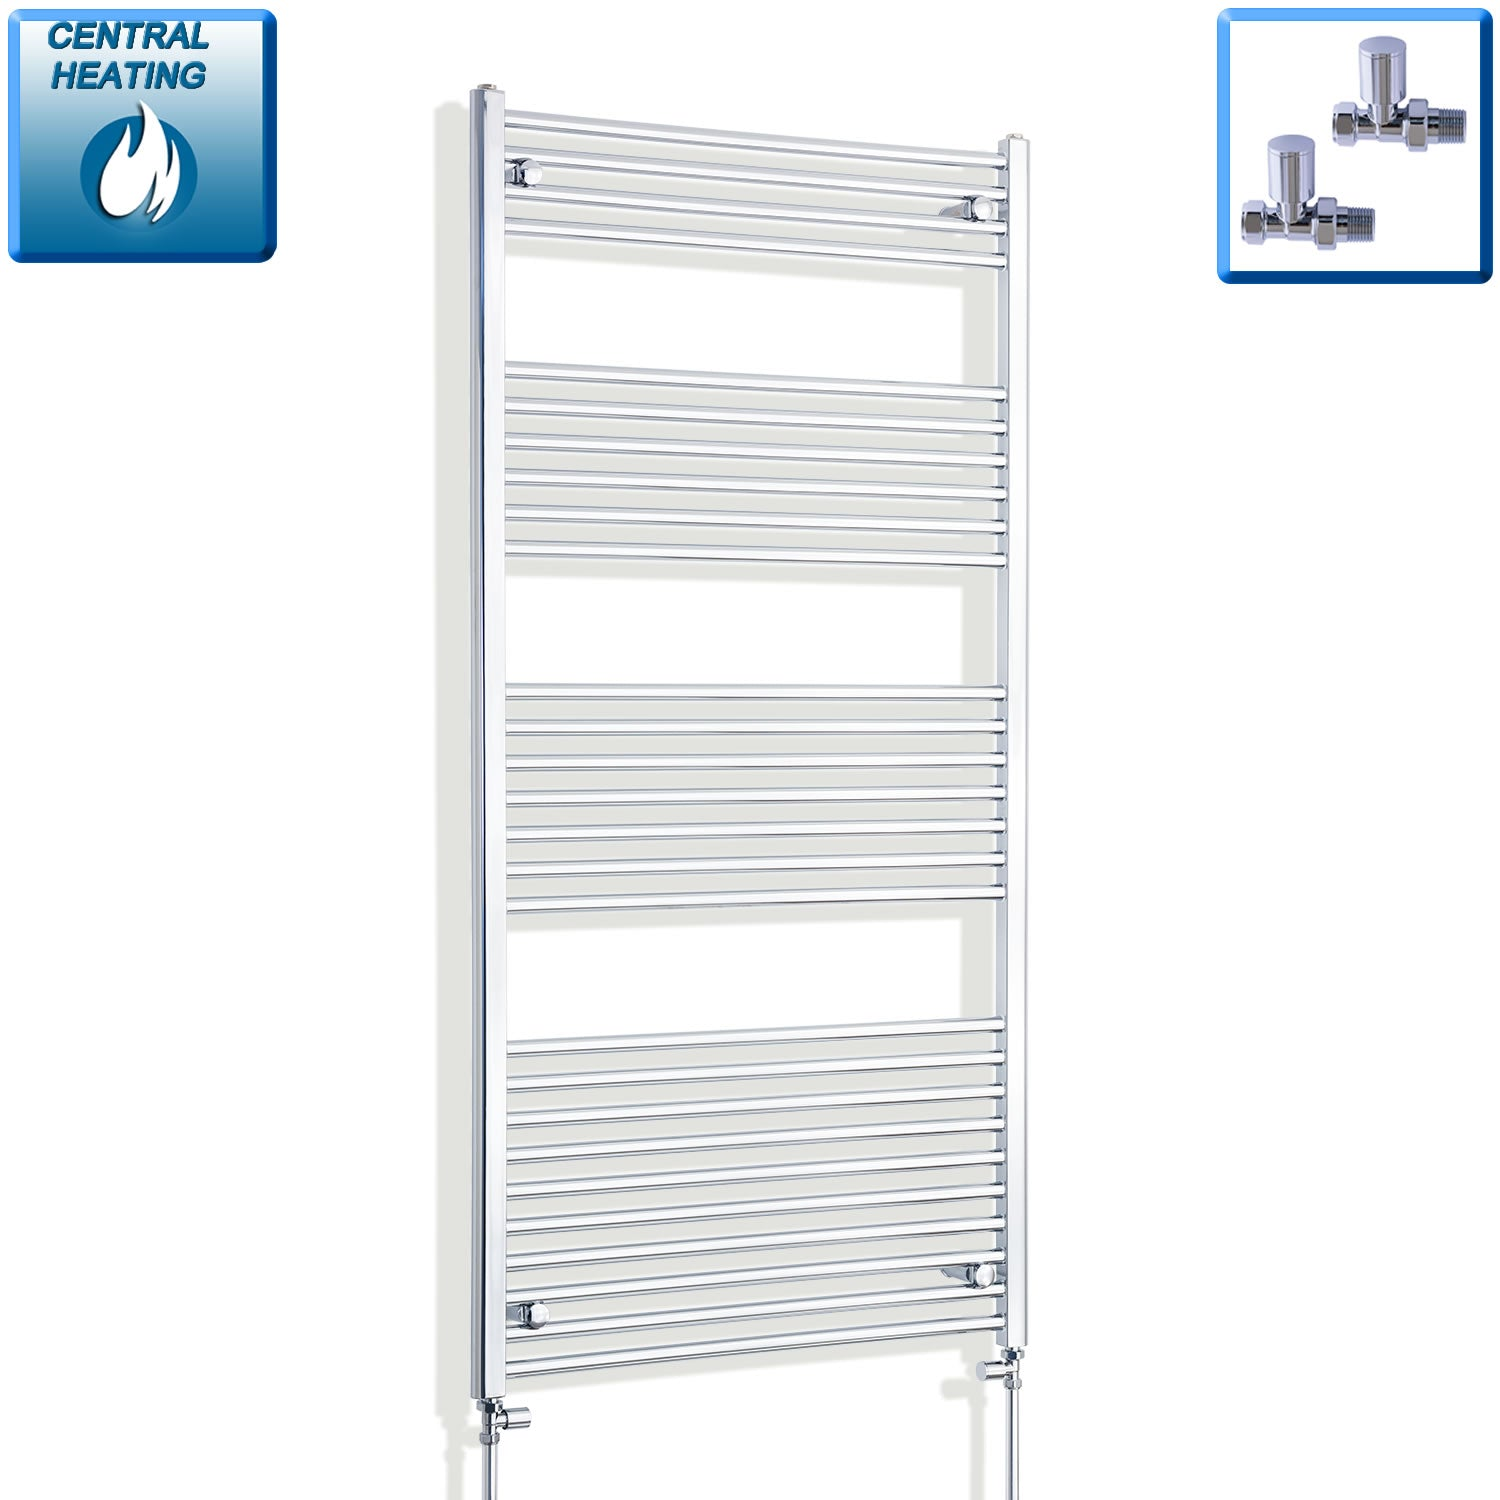 800mm Wide 1600mm High Chrome Towel Rail Radiator With Straight Valve